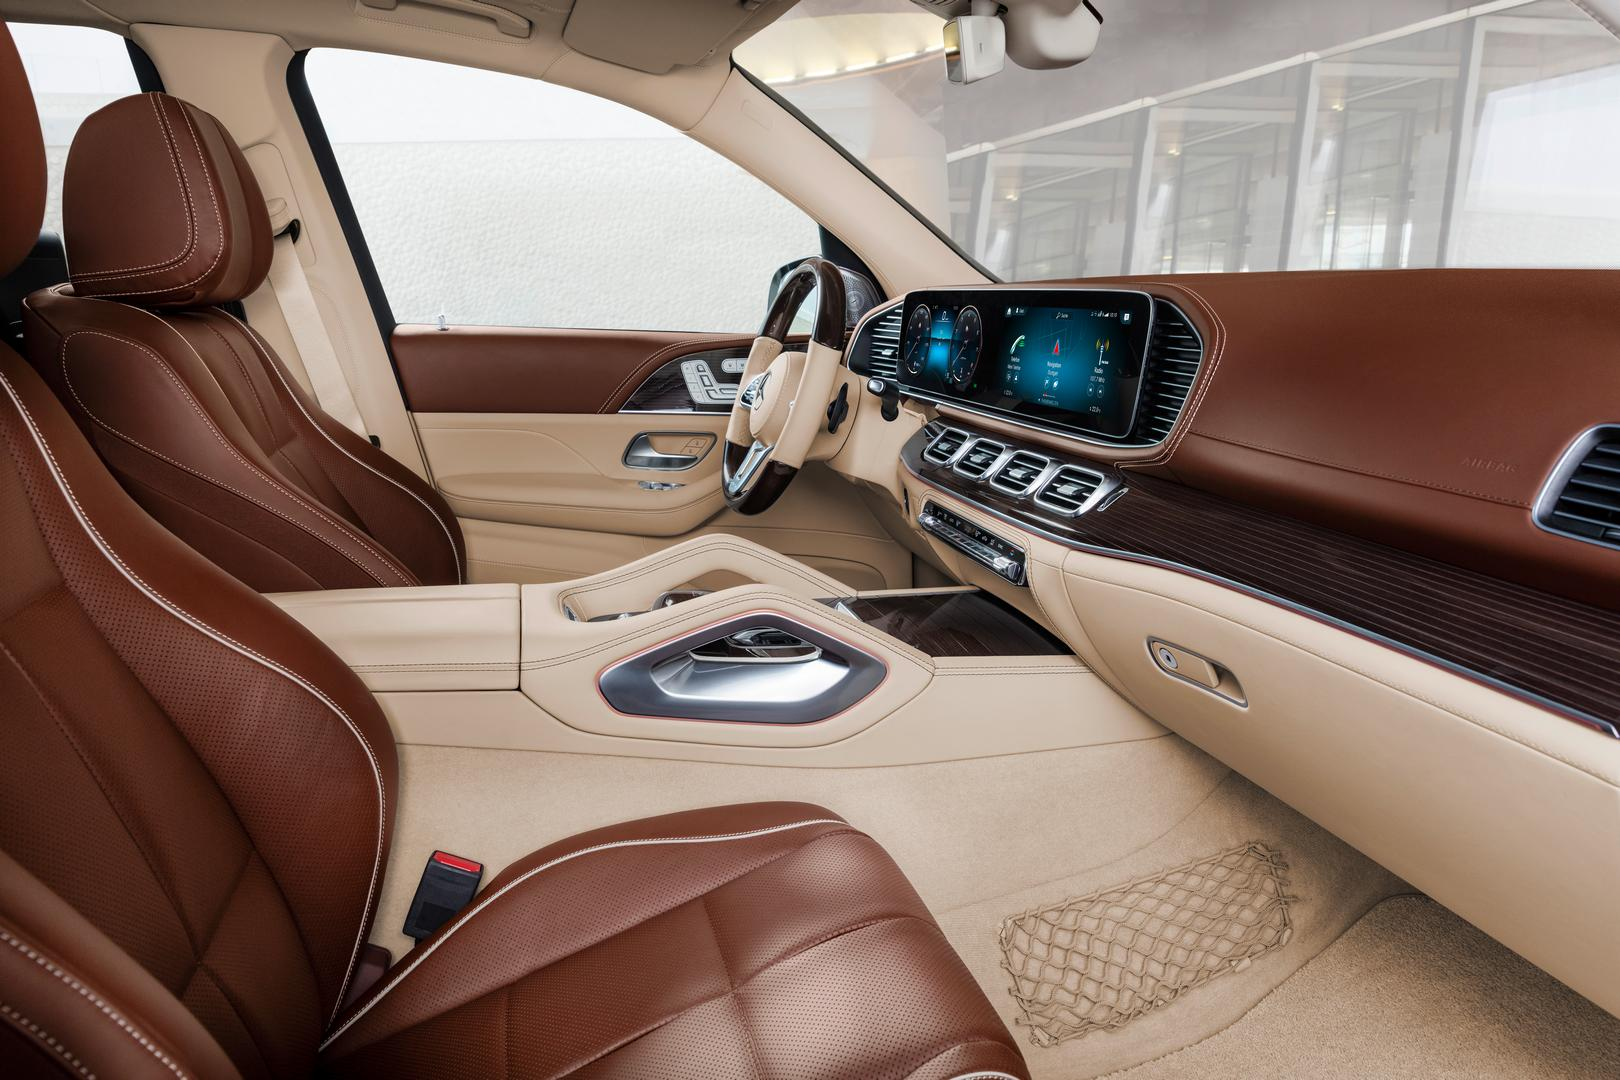 Mercedes-Maybach GLS 600 Interior